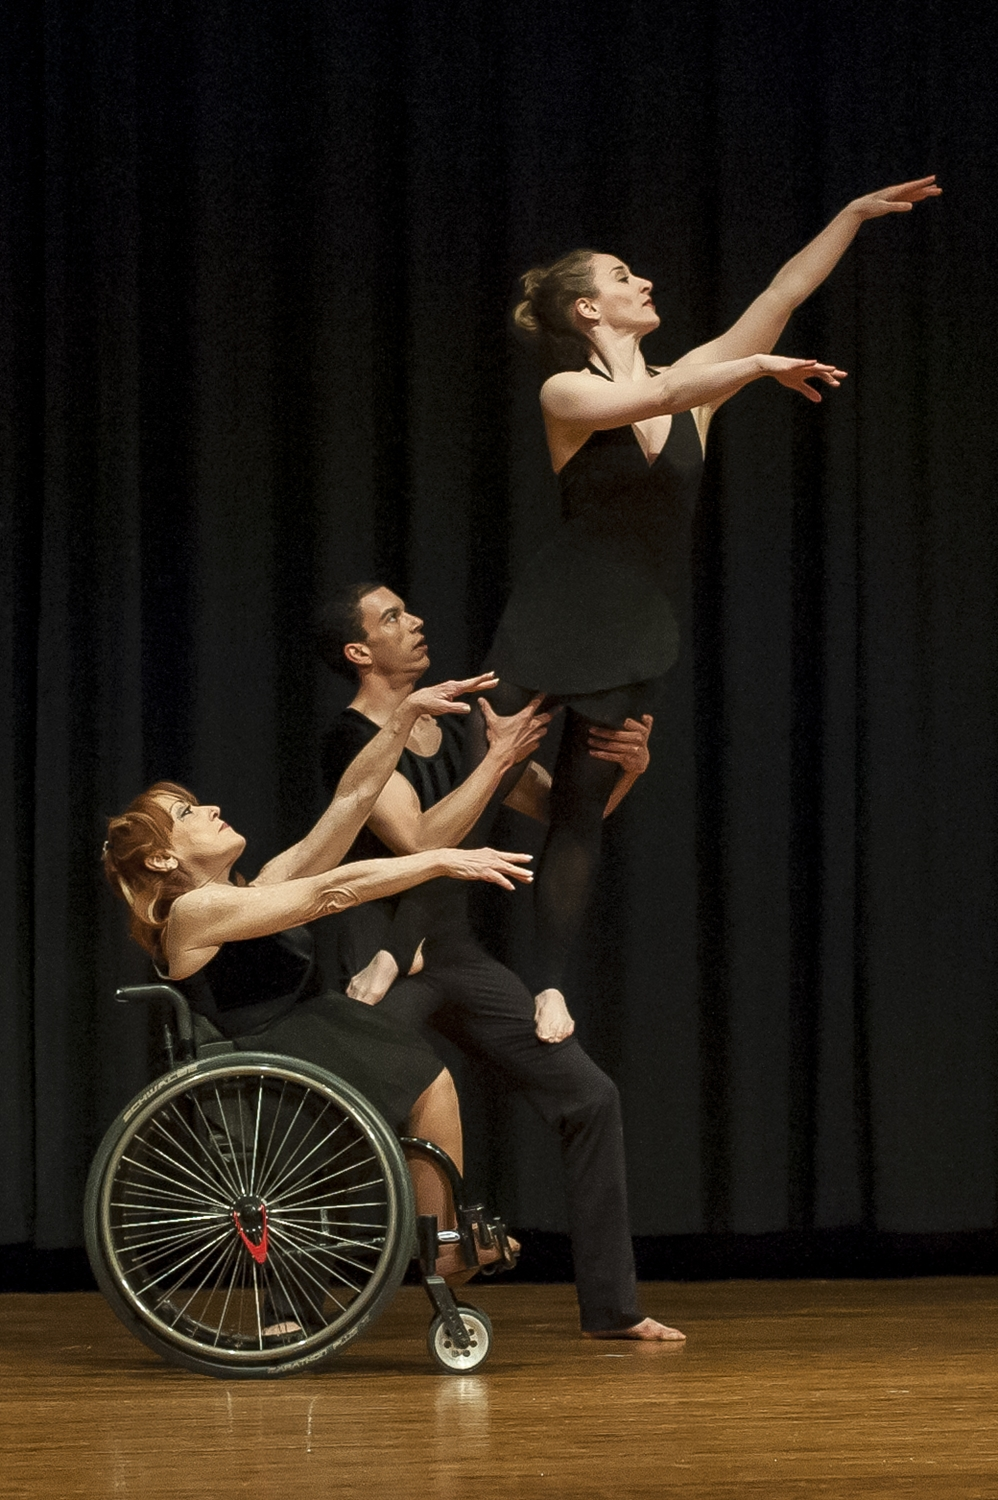 The dance company Dancing Wheels performs at Kansas State University as part of K-State For All Week, an event to highlight the abilities of people with differences.  Dancing Wheels is the first professional company in America made up    of artists with and without disabilities that educate, entertain and advocate through inclusive dance.